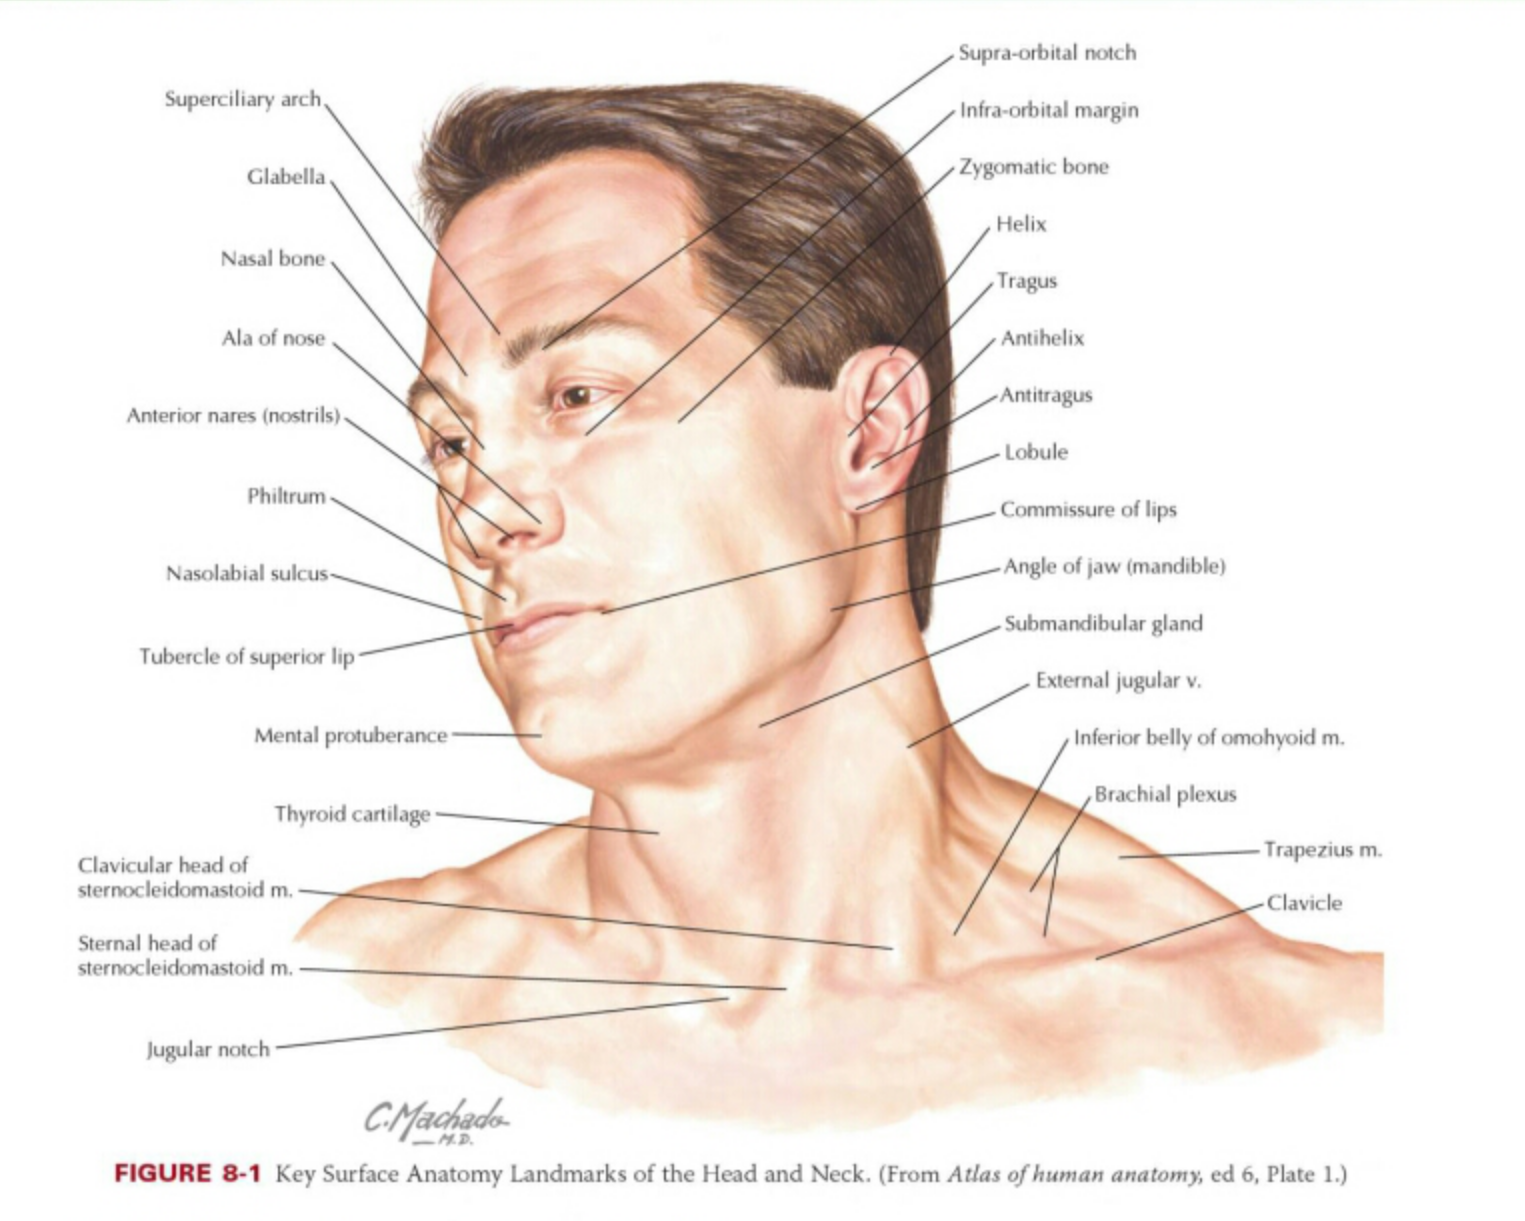 Surface anatomy of the head and neck region | Nursie | Pinterest ...